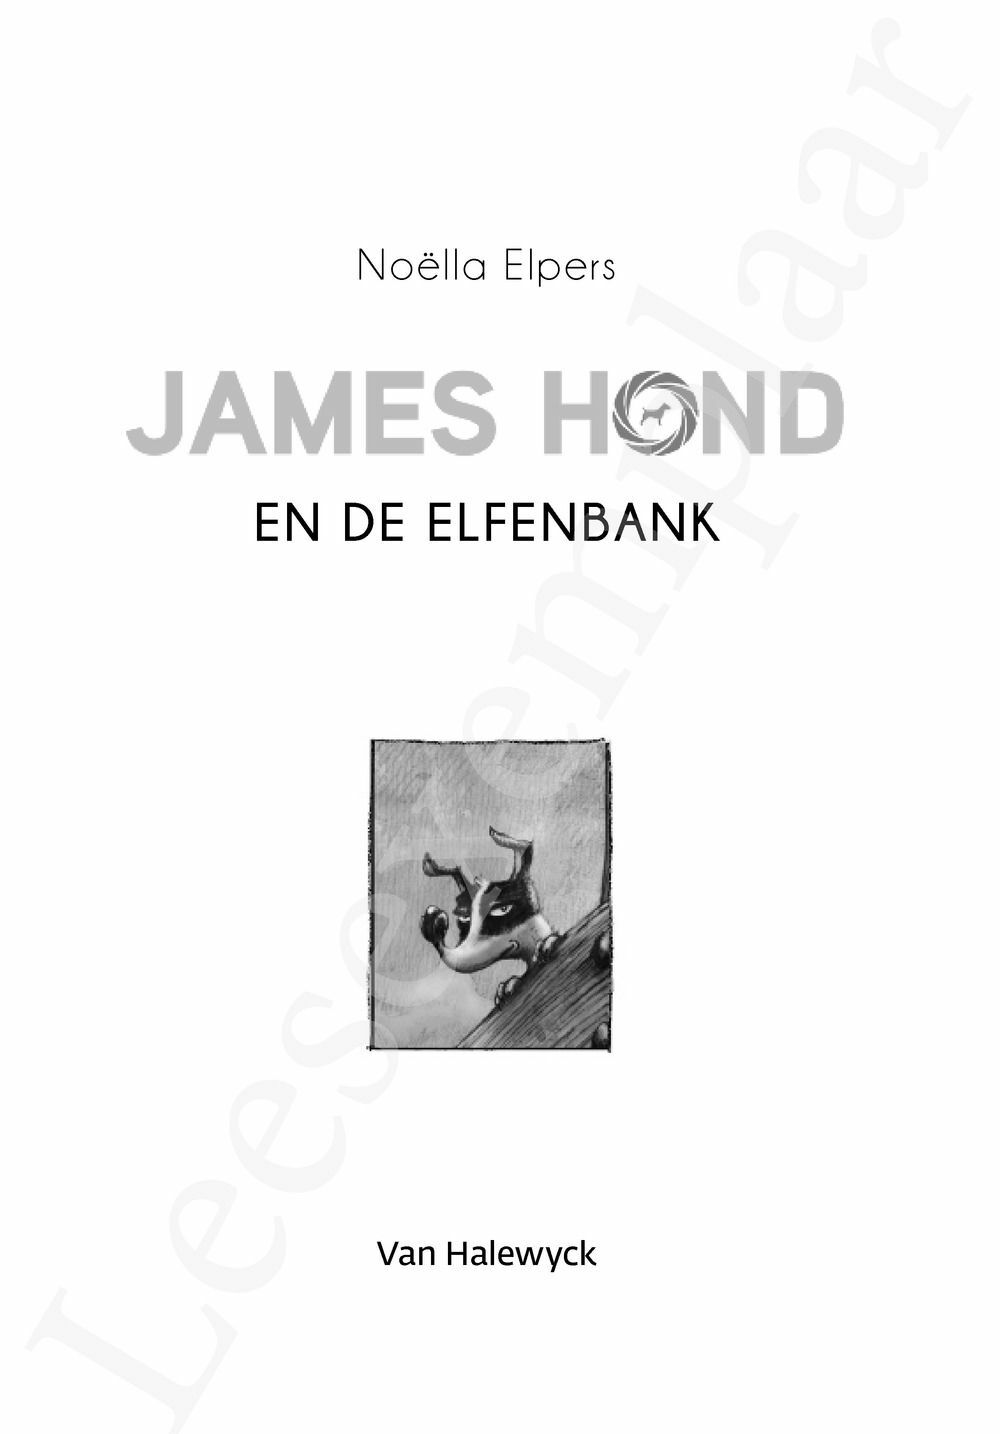 Preview: James Hond en de Elfenbank